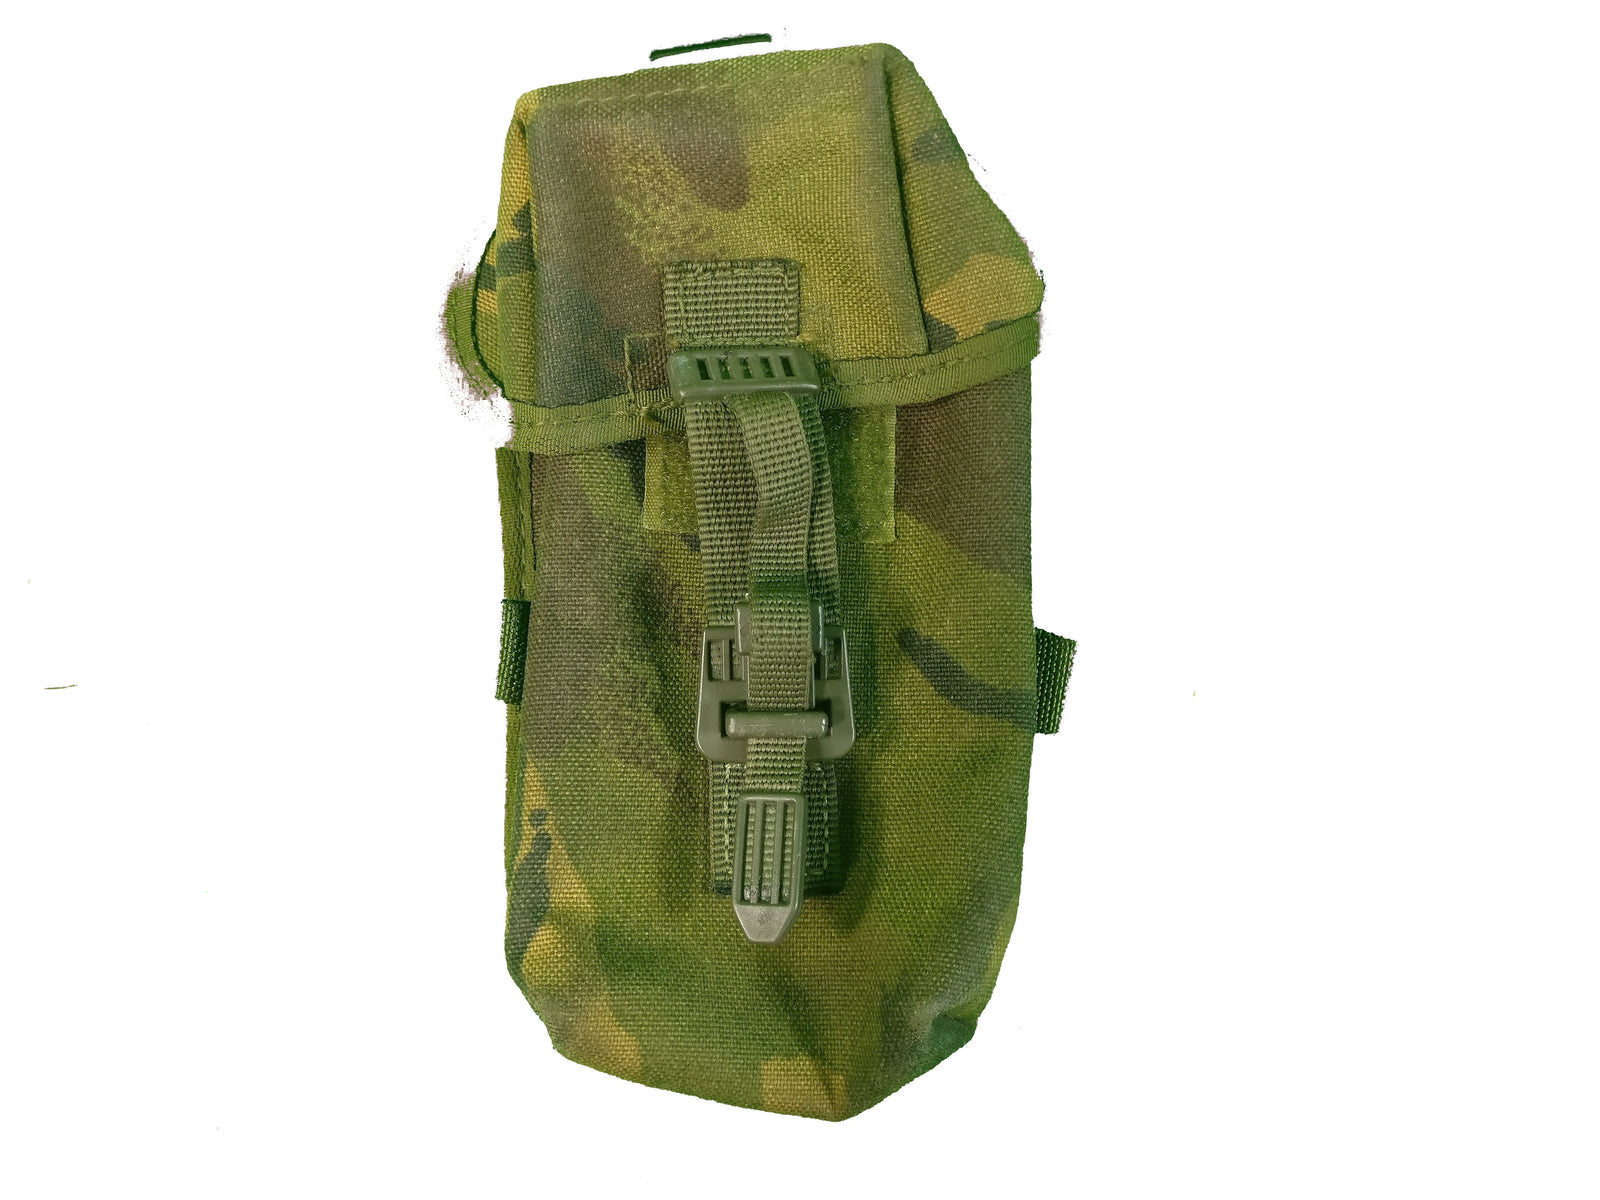 British army surplus single ammo pouch